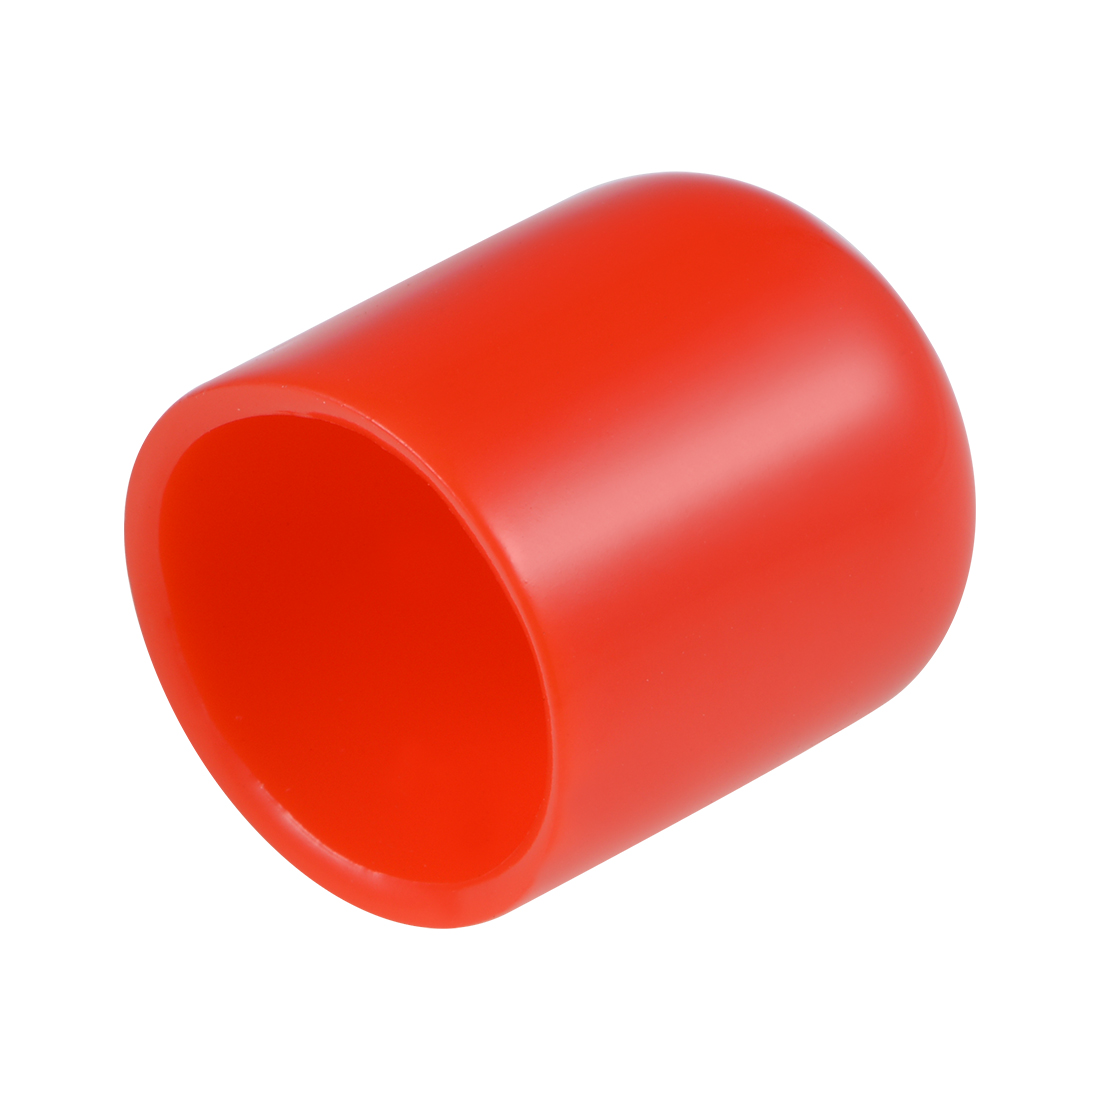 Screw Thread Protector, 19mm ID Round End Cap Cover Red Tube Caps 20pcs